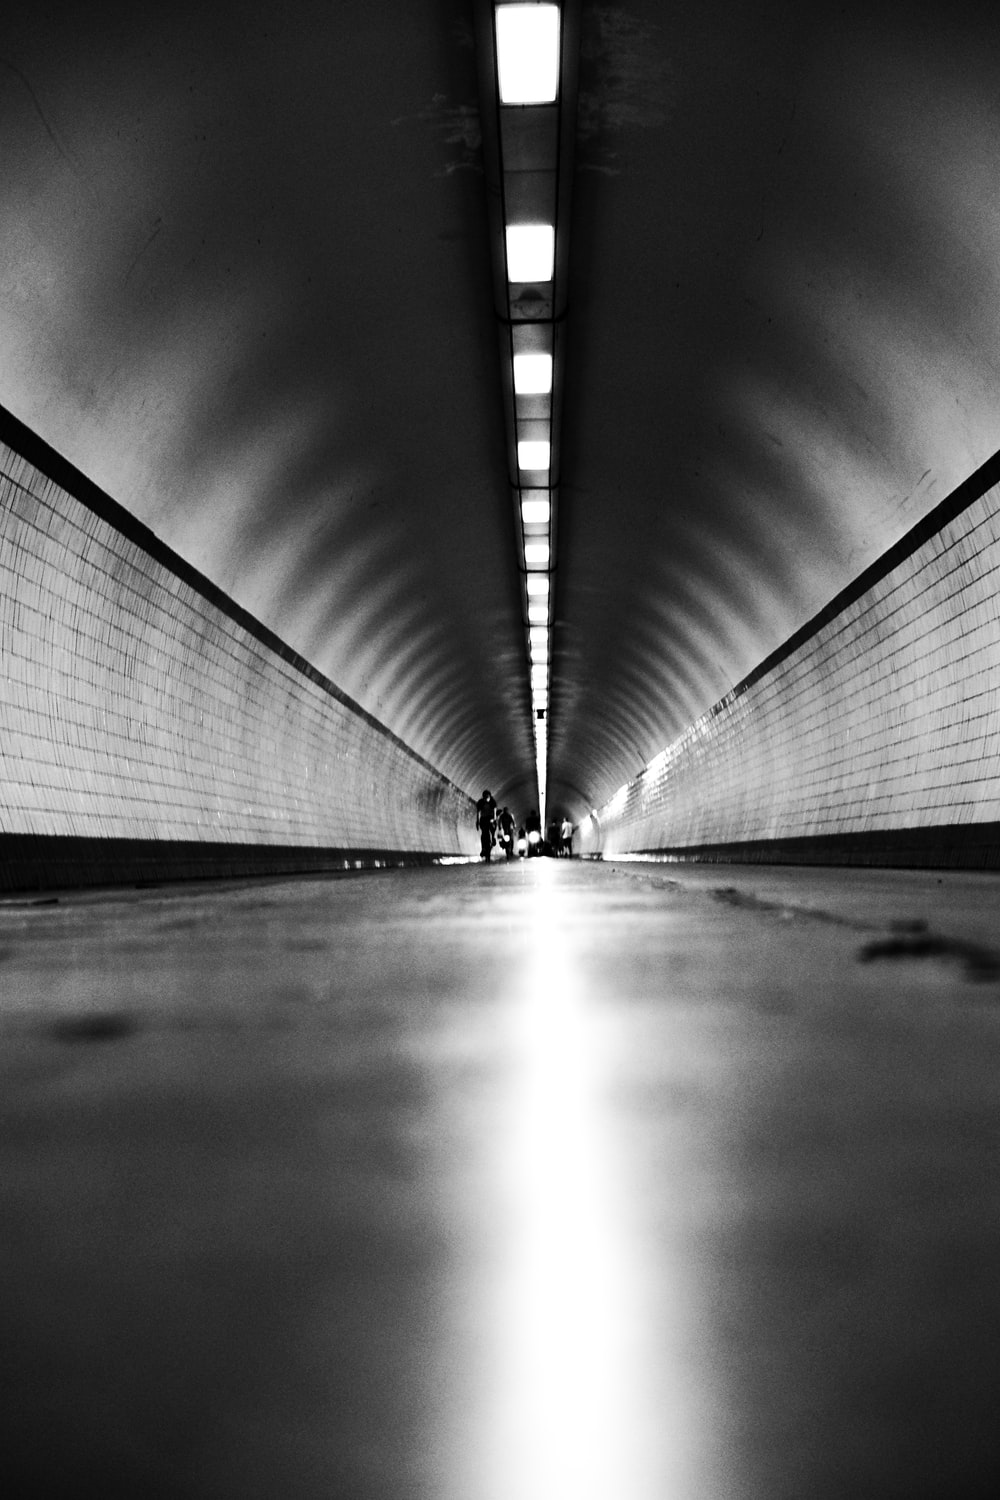 grayscale photo of a man walking on a hallway